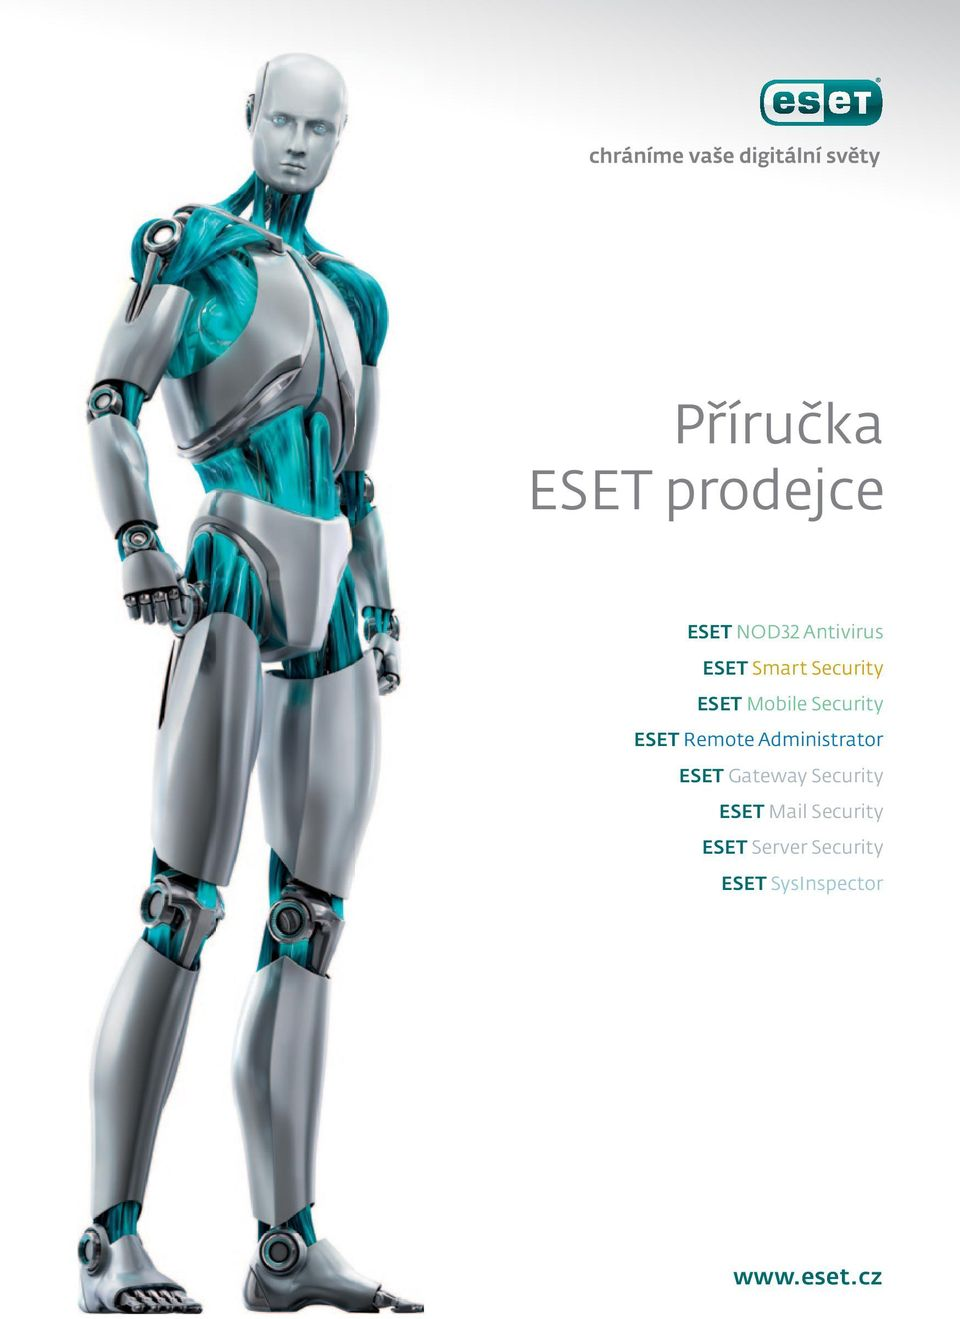 Remote Administrator ESET Gateway Security ESET